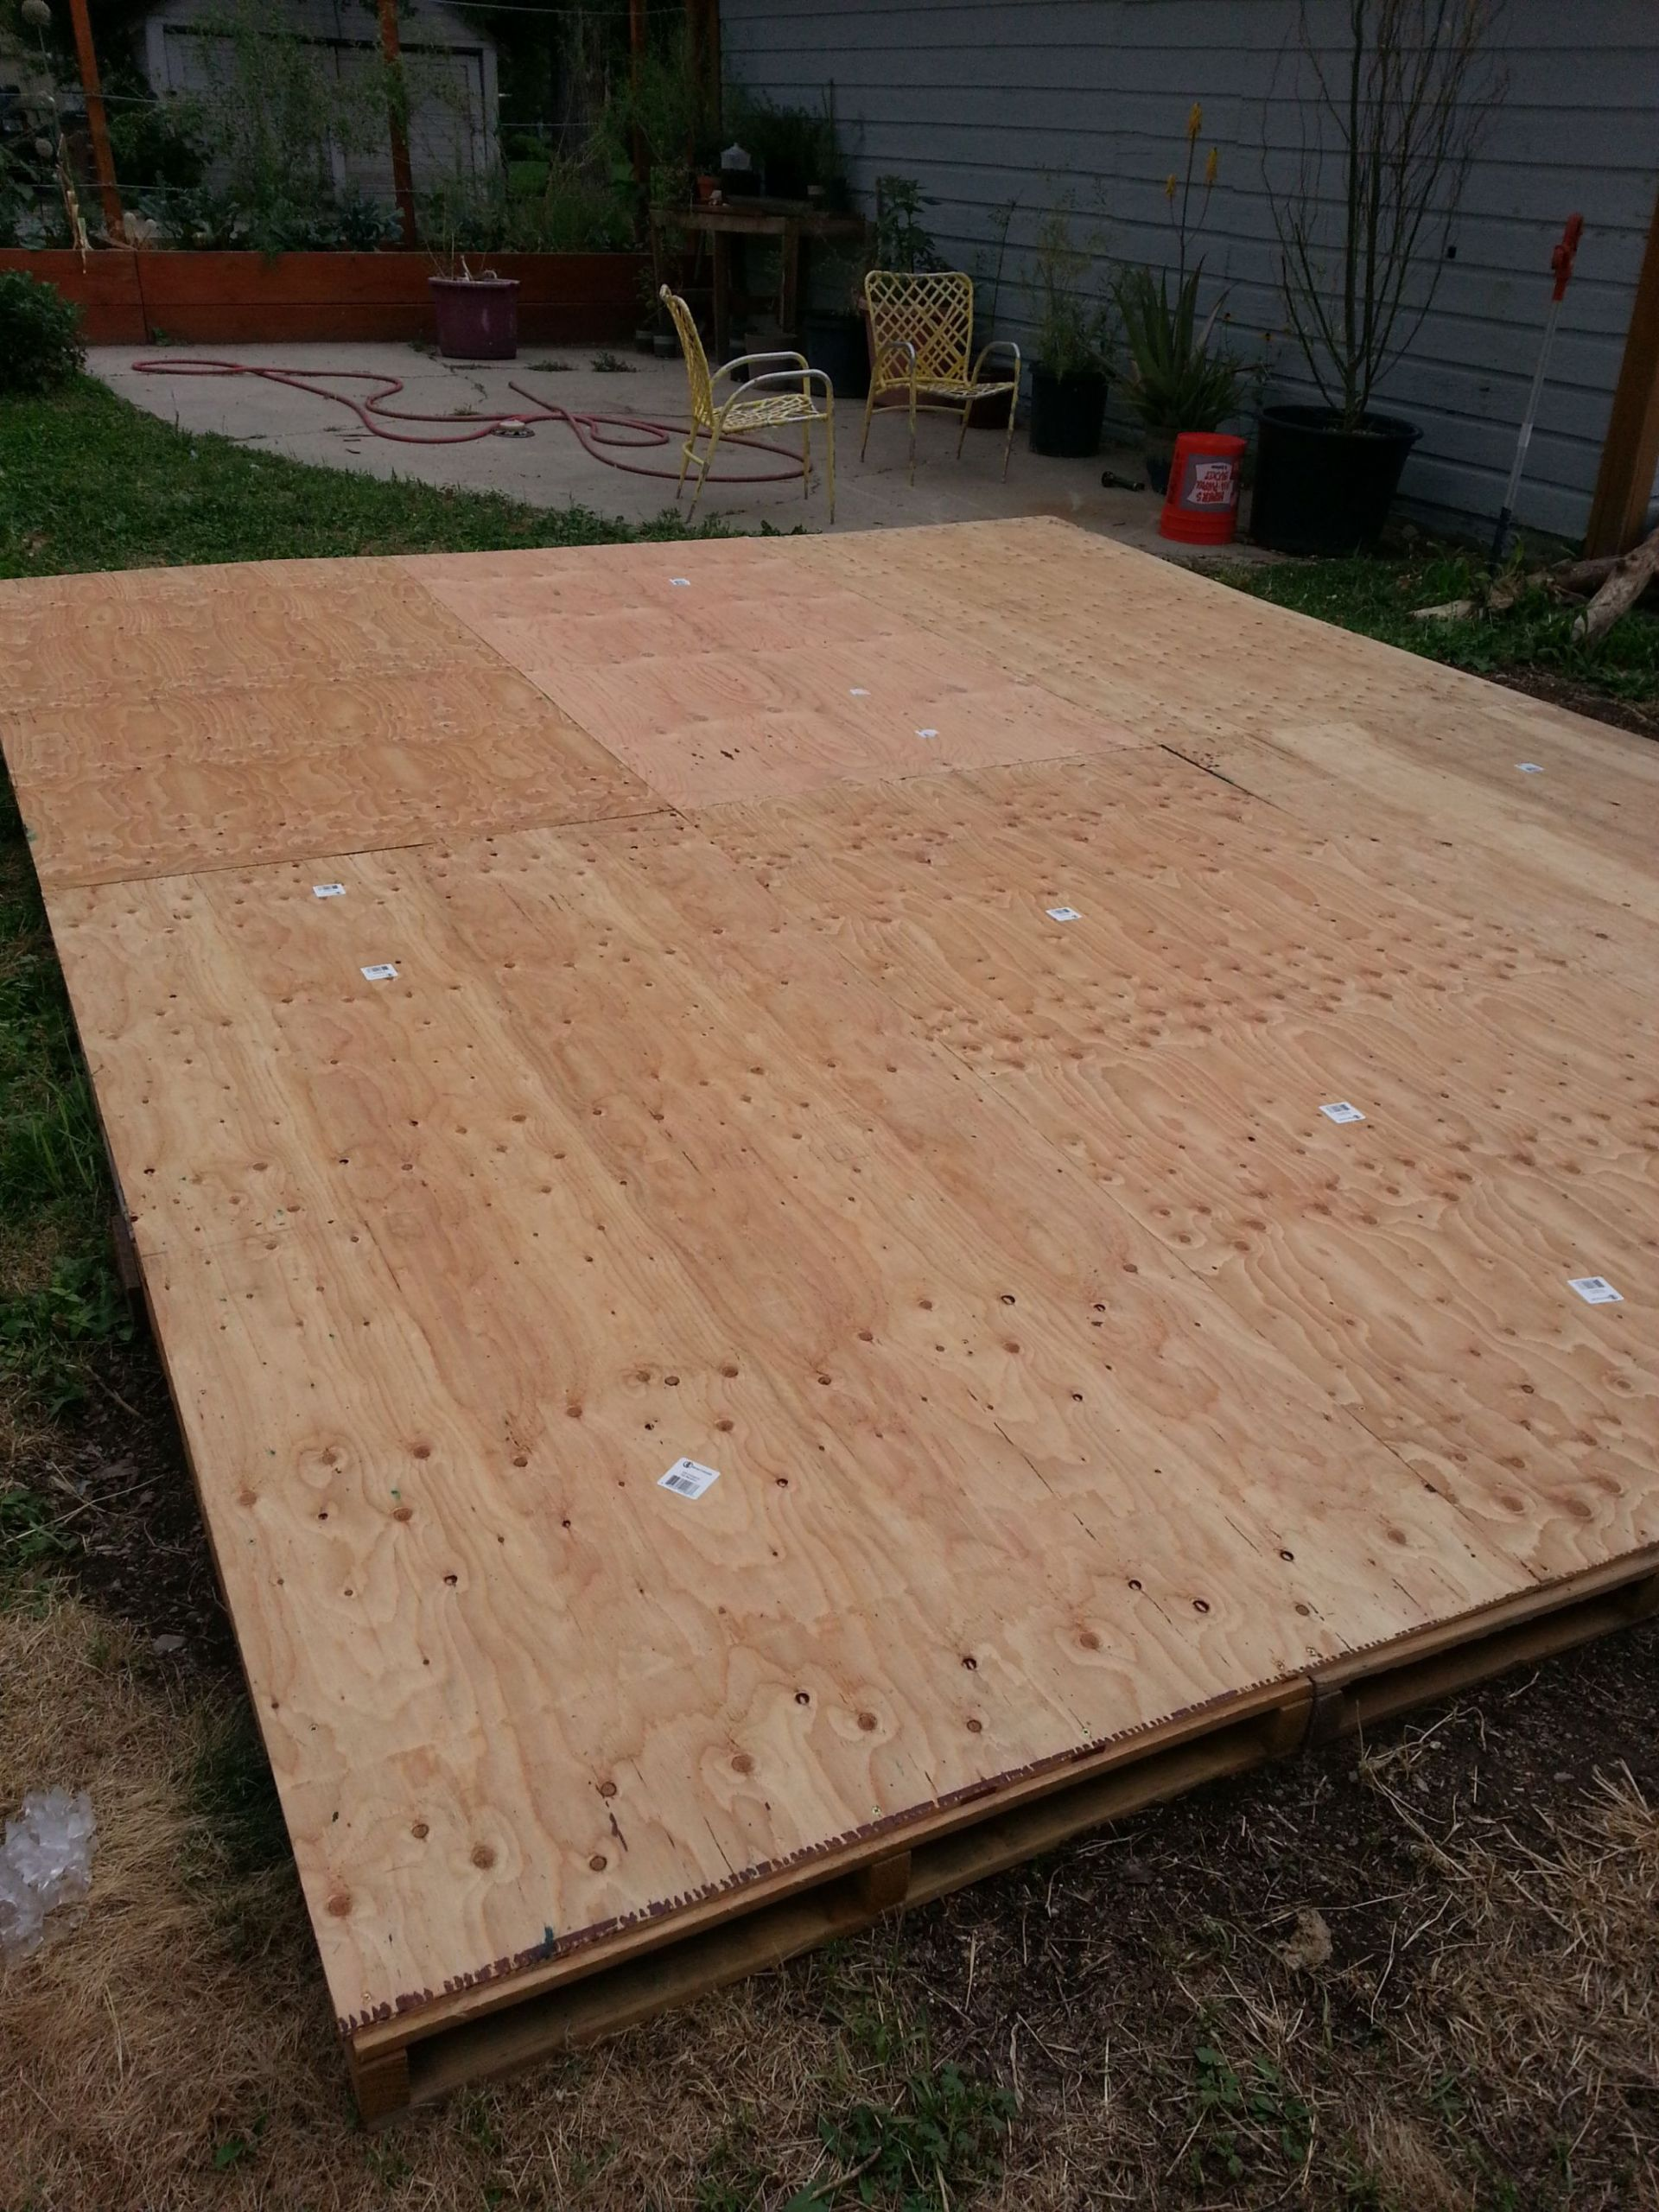 The Best Diy Outdoor Dance Floor - Home, Family, Style and ...